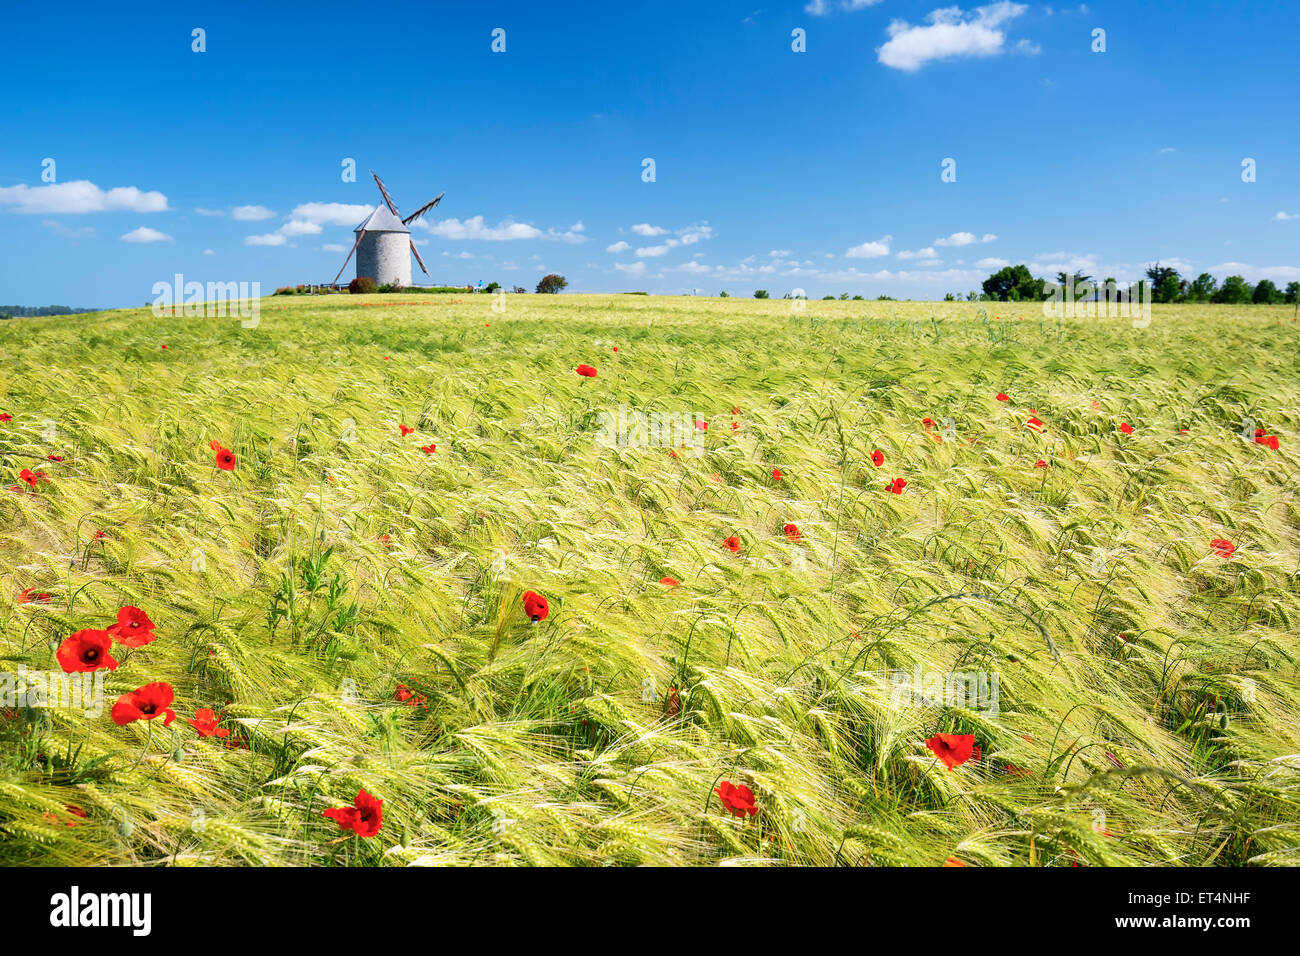 Windmill and wheat field, France, Europe. - Stock Image